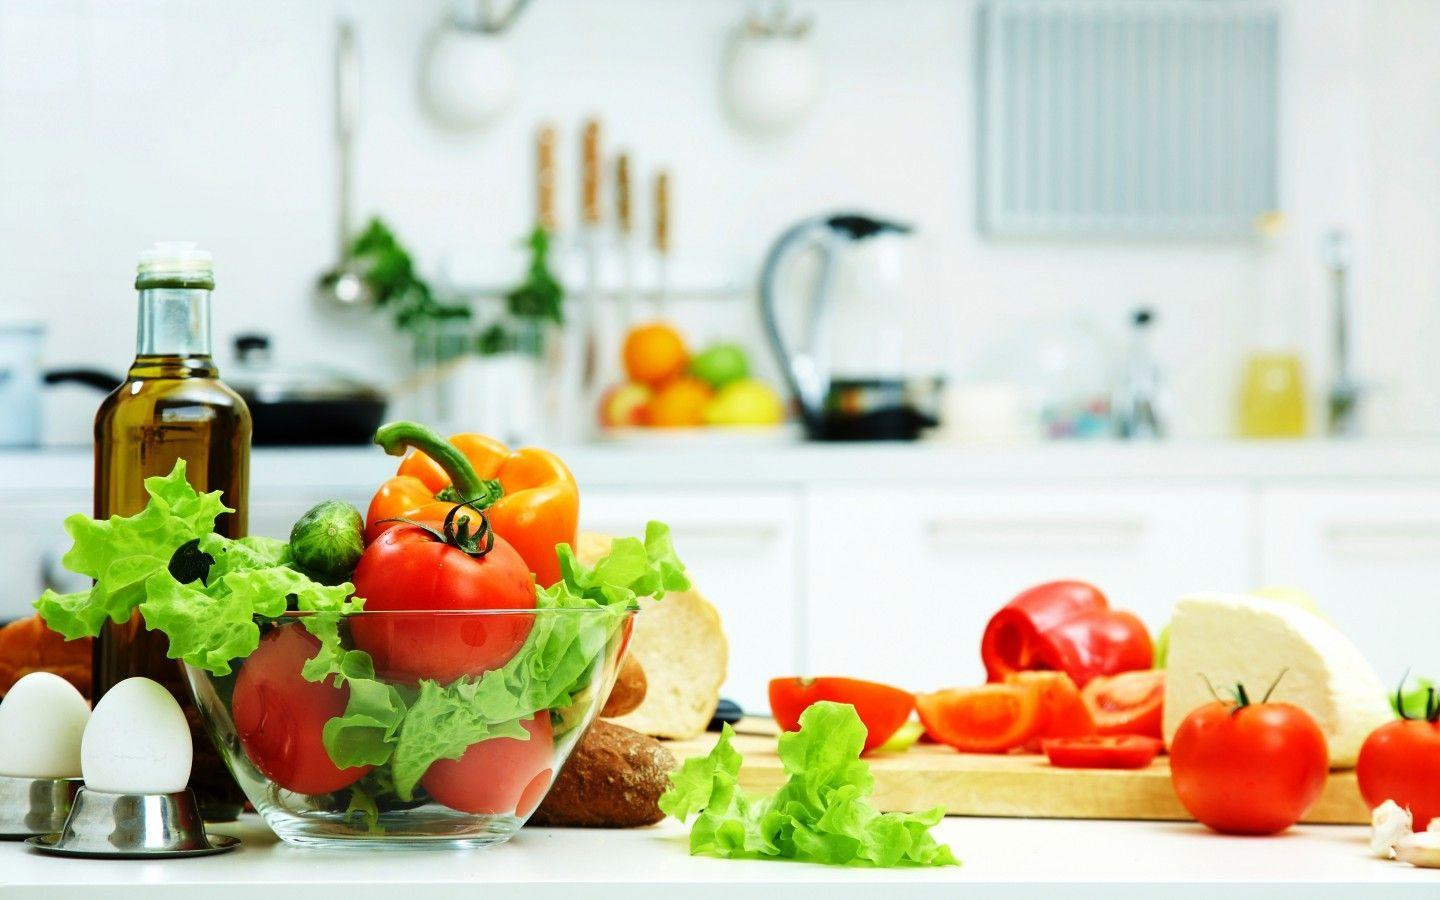 Healthy Food Wallpapers For